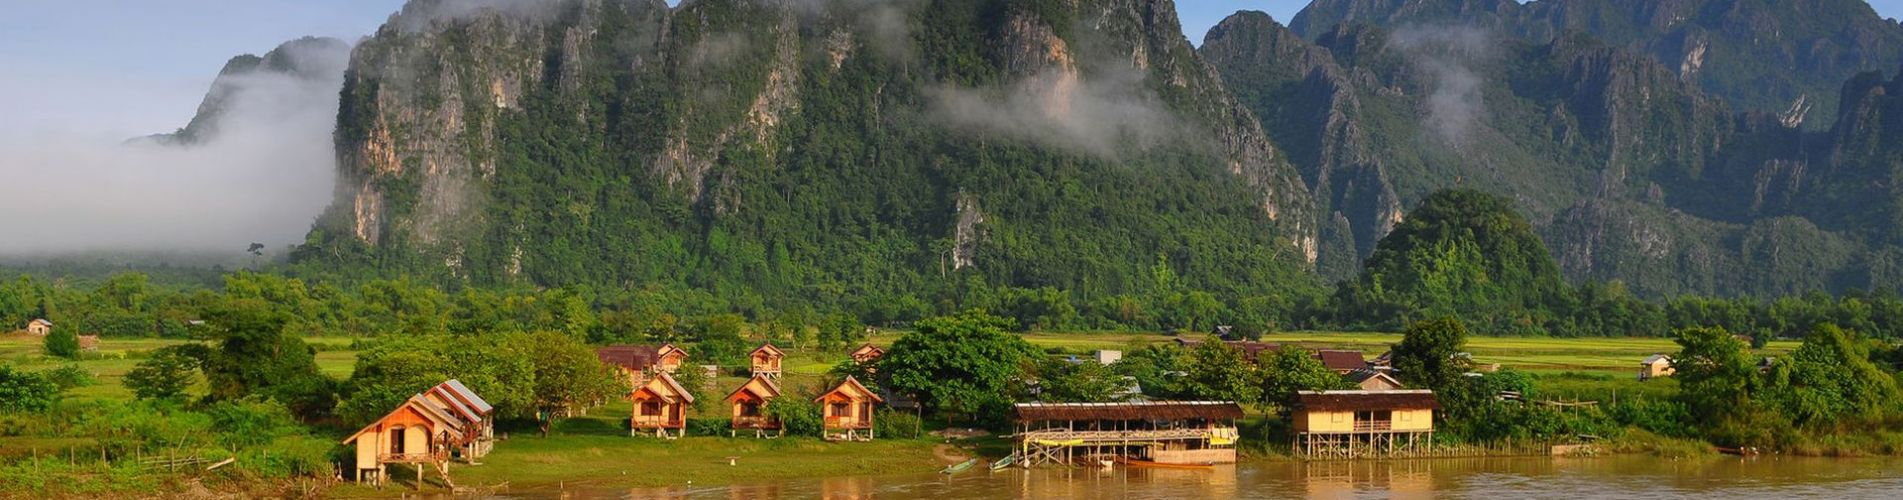 Destinations in Laos